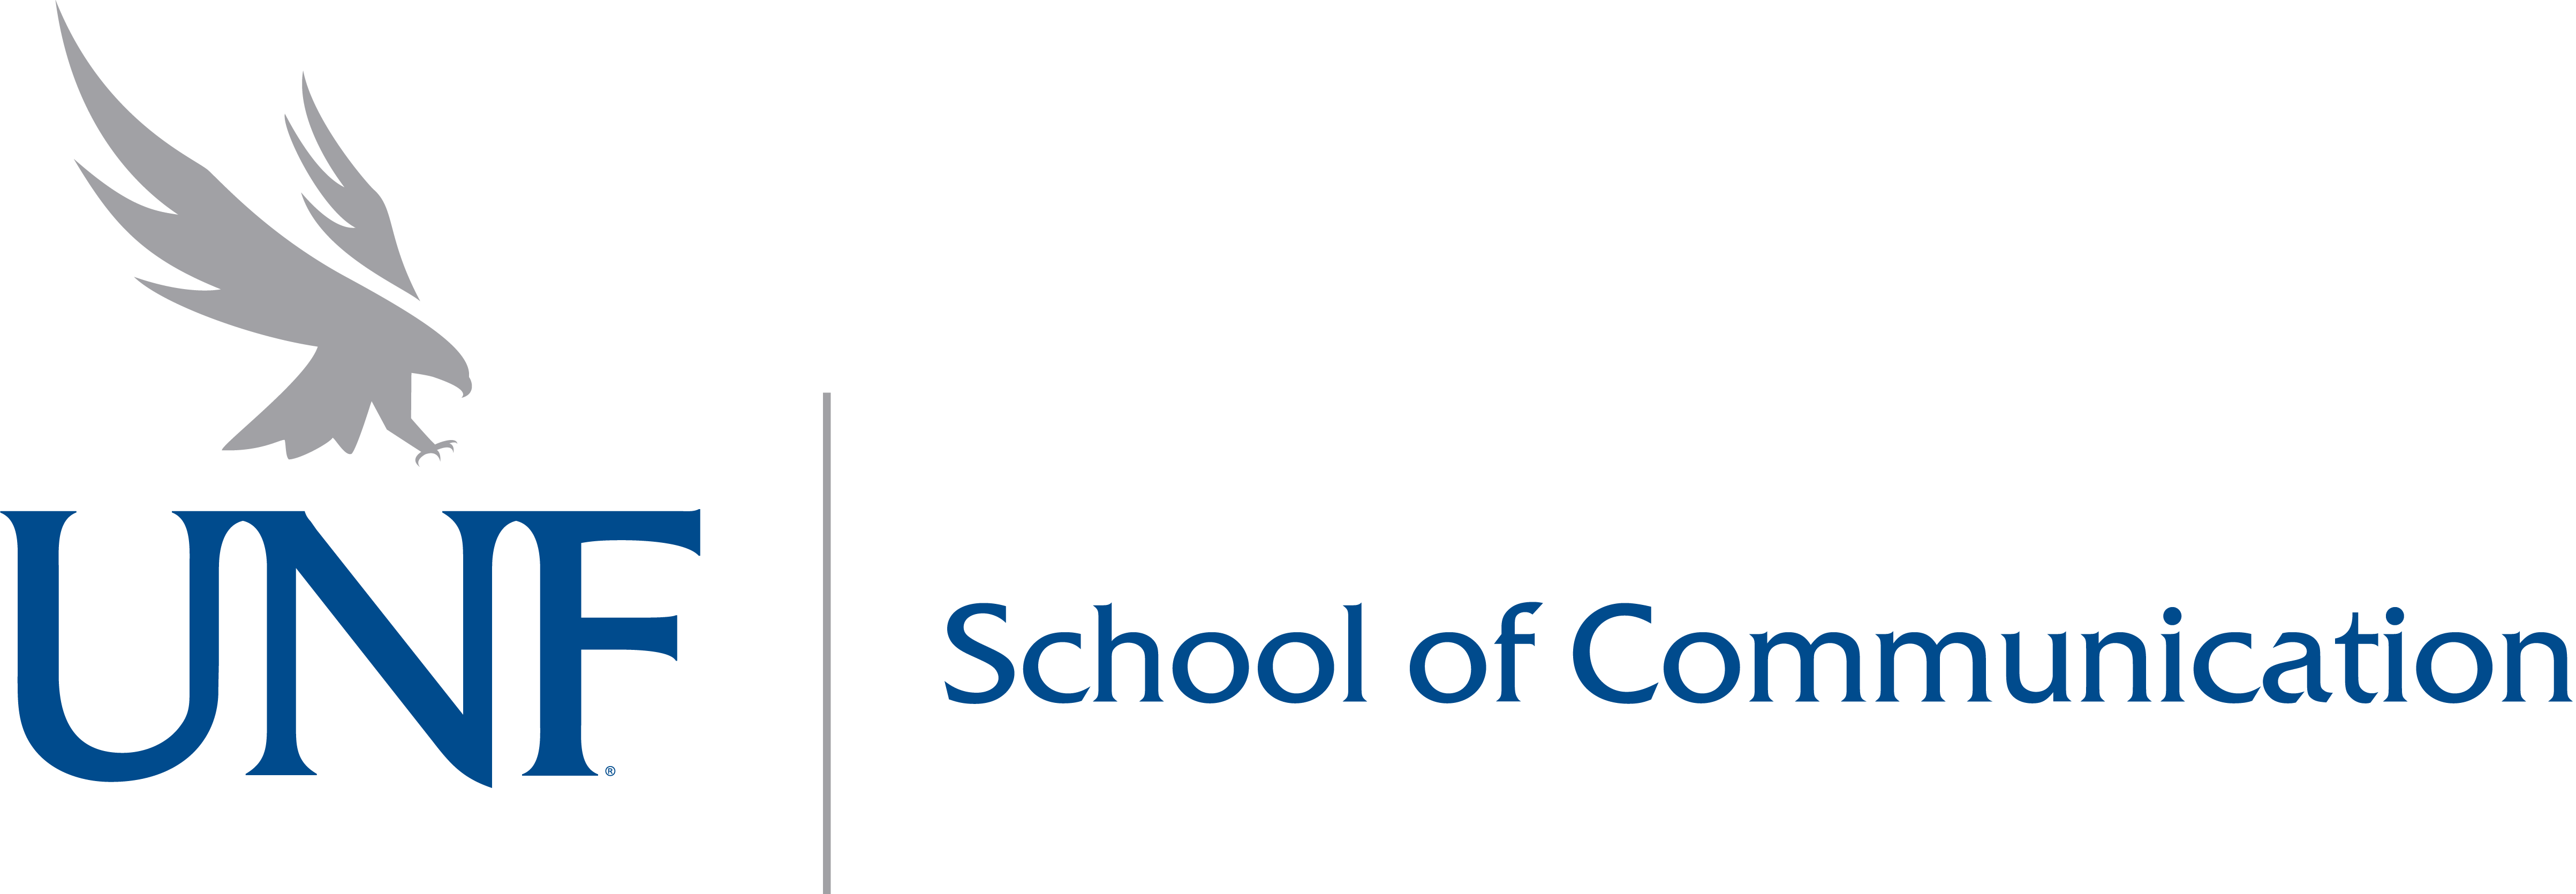 UNF School of Communication logo